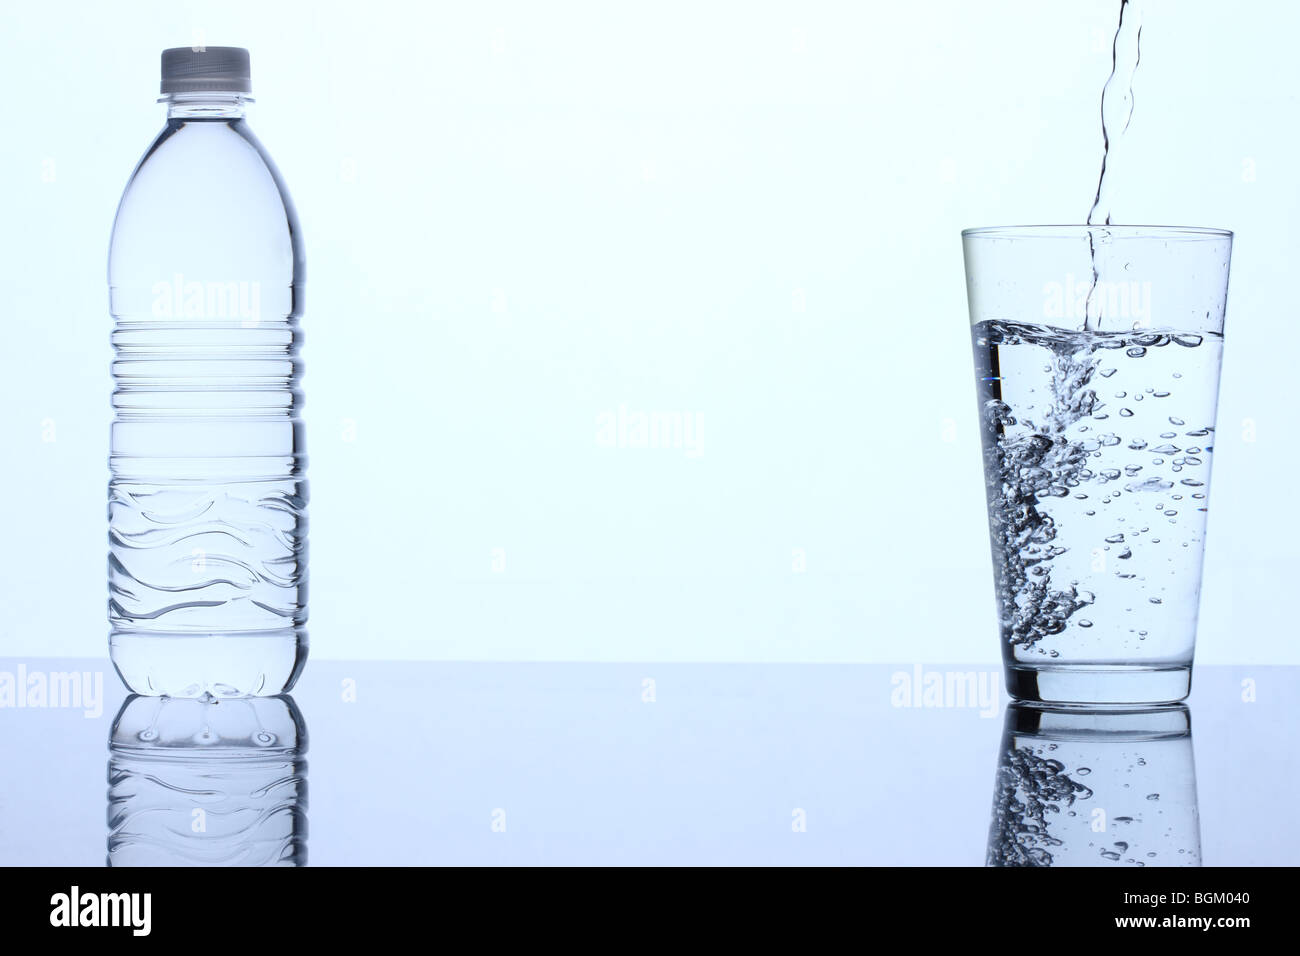 Bottle of water and glass of water being filled Stock Photo